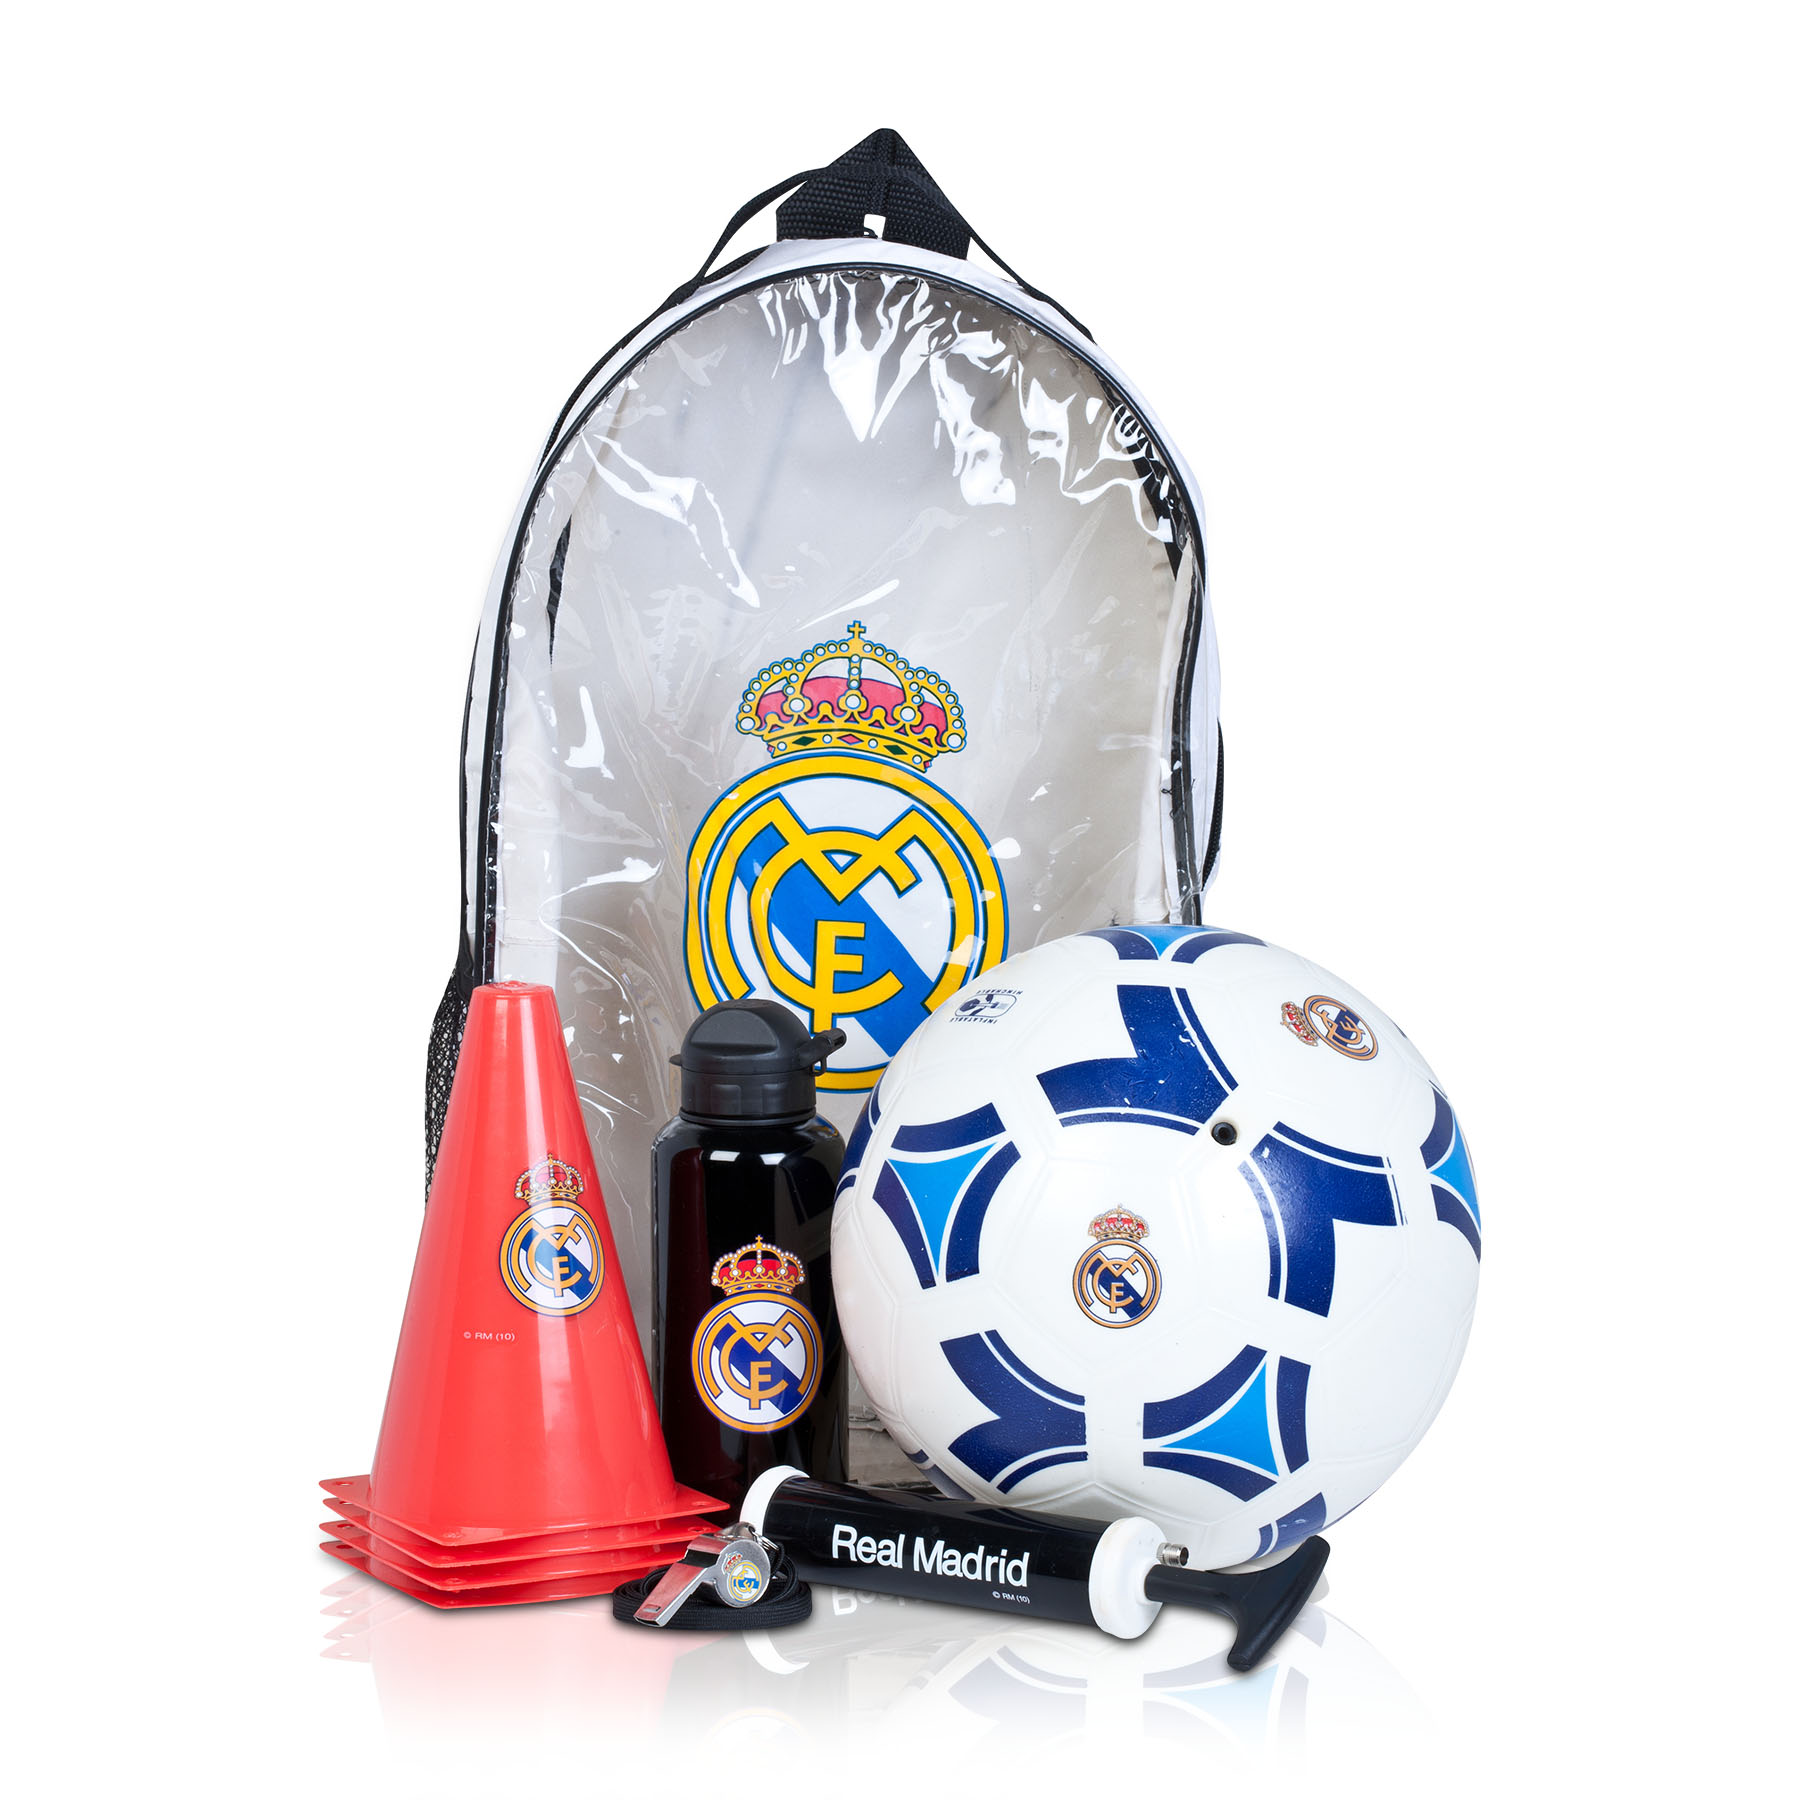 Real Madrid Football Accessories Kit